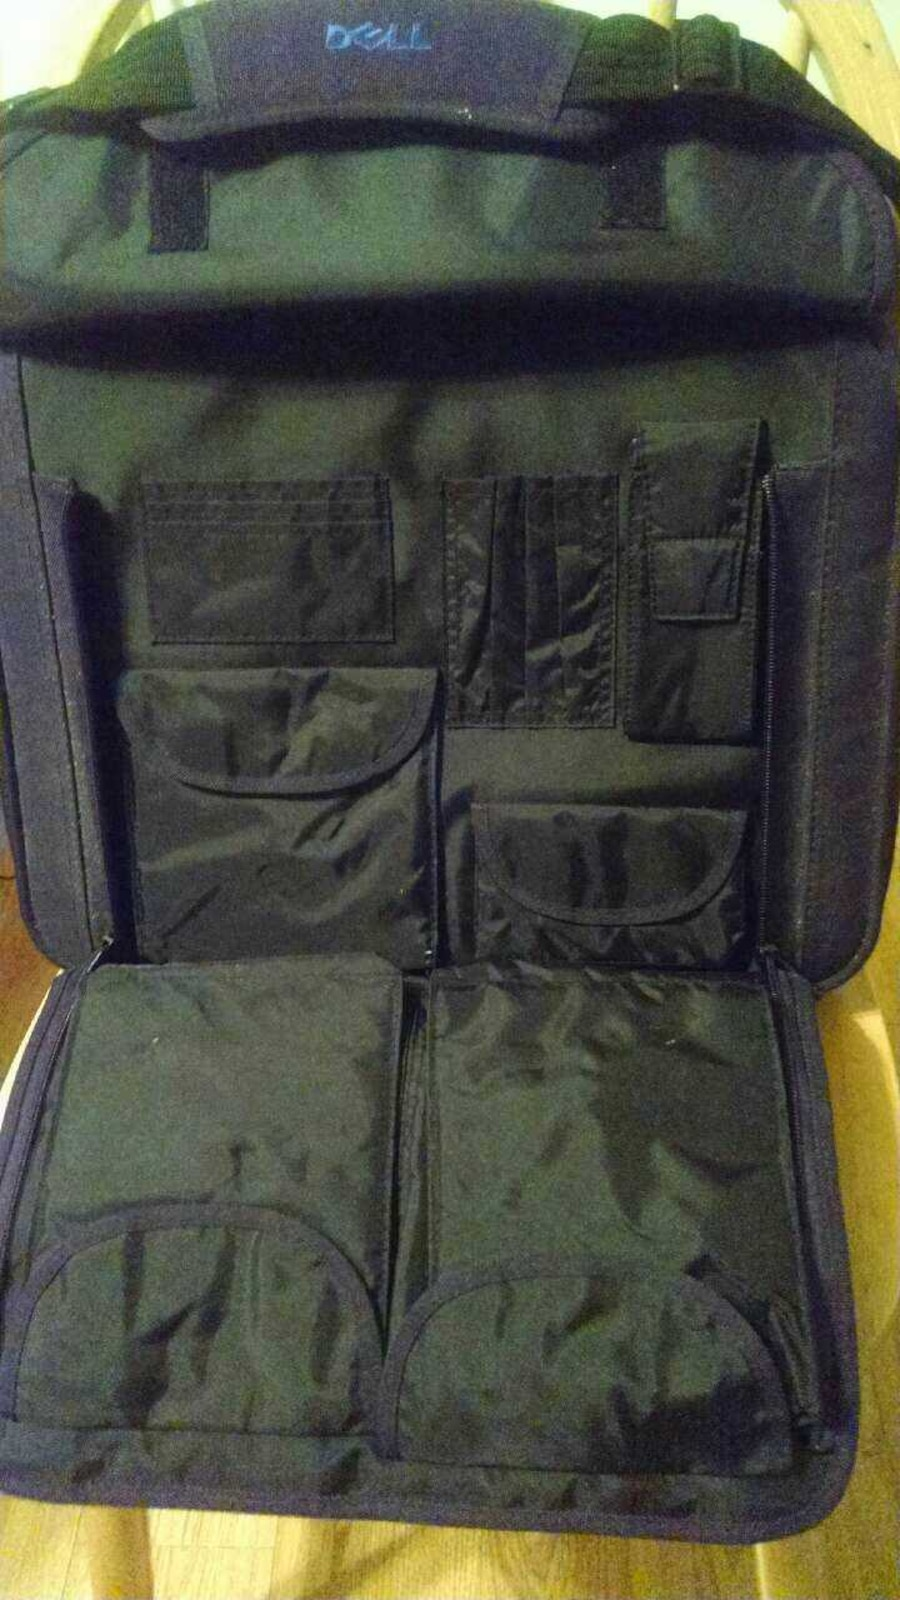 Black and leather Dell laptop case great condition - Toms River